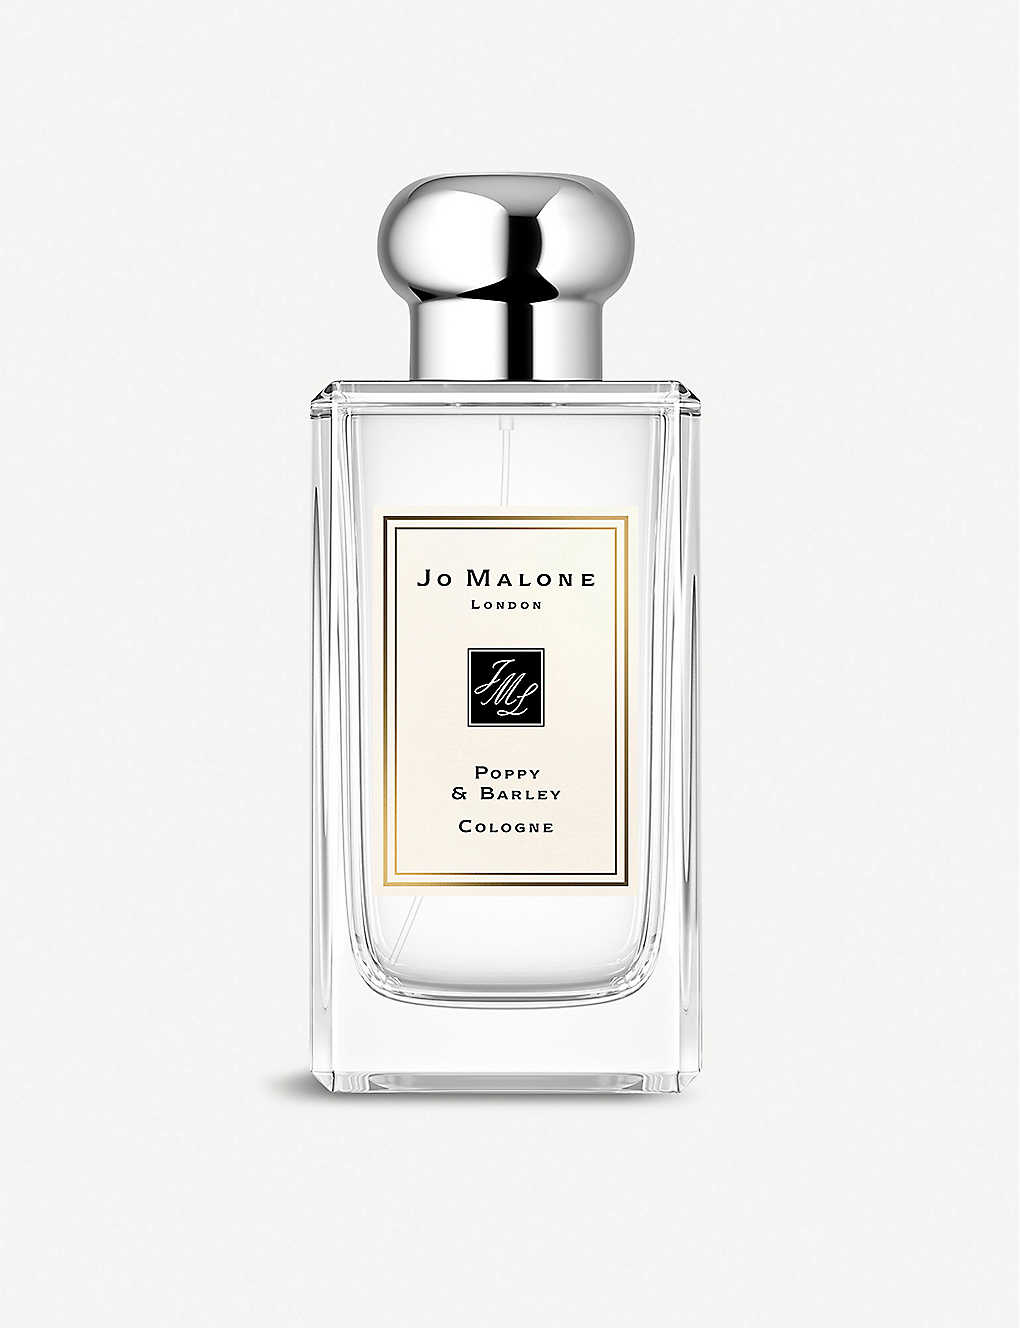 Poppy and Barley cologne 100ml